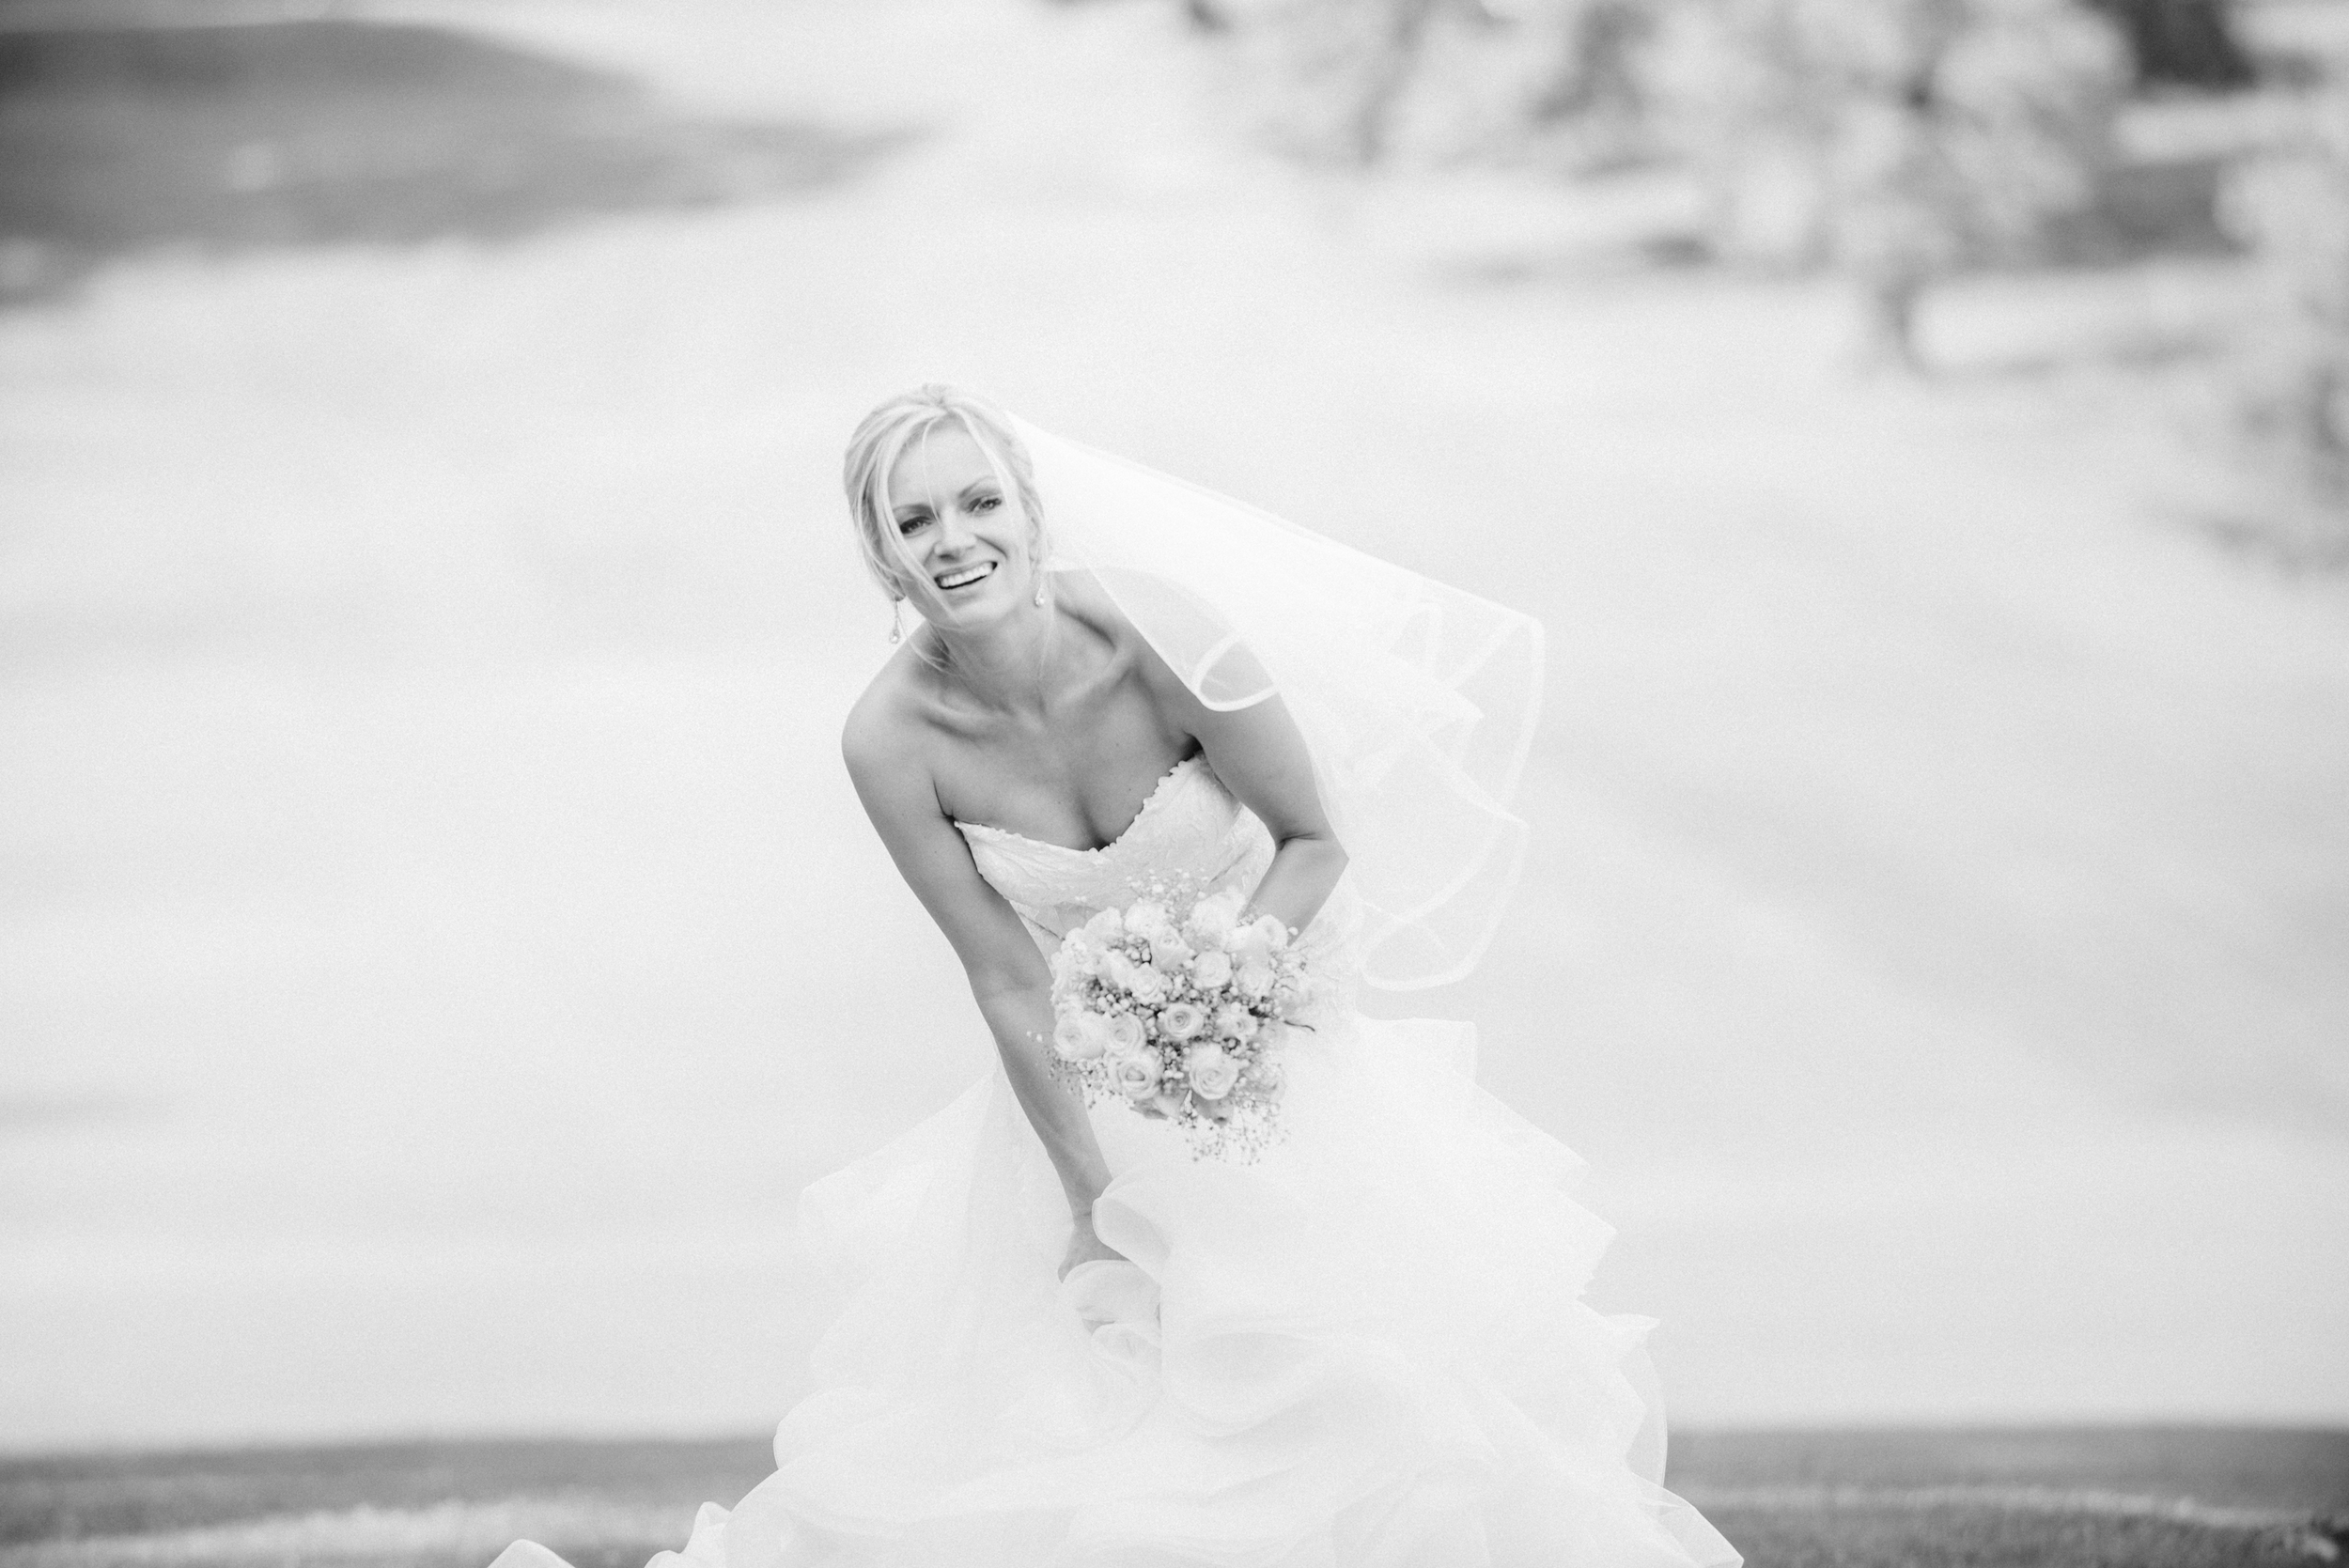 033Koper-Ekiert-Roanoke-Wedding-Virginia-Photographer-mattrossphotography.com.jpg